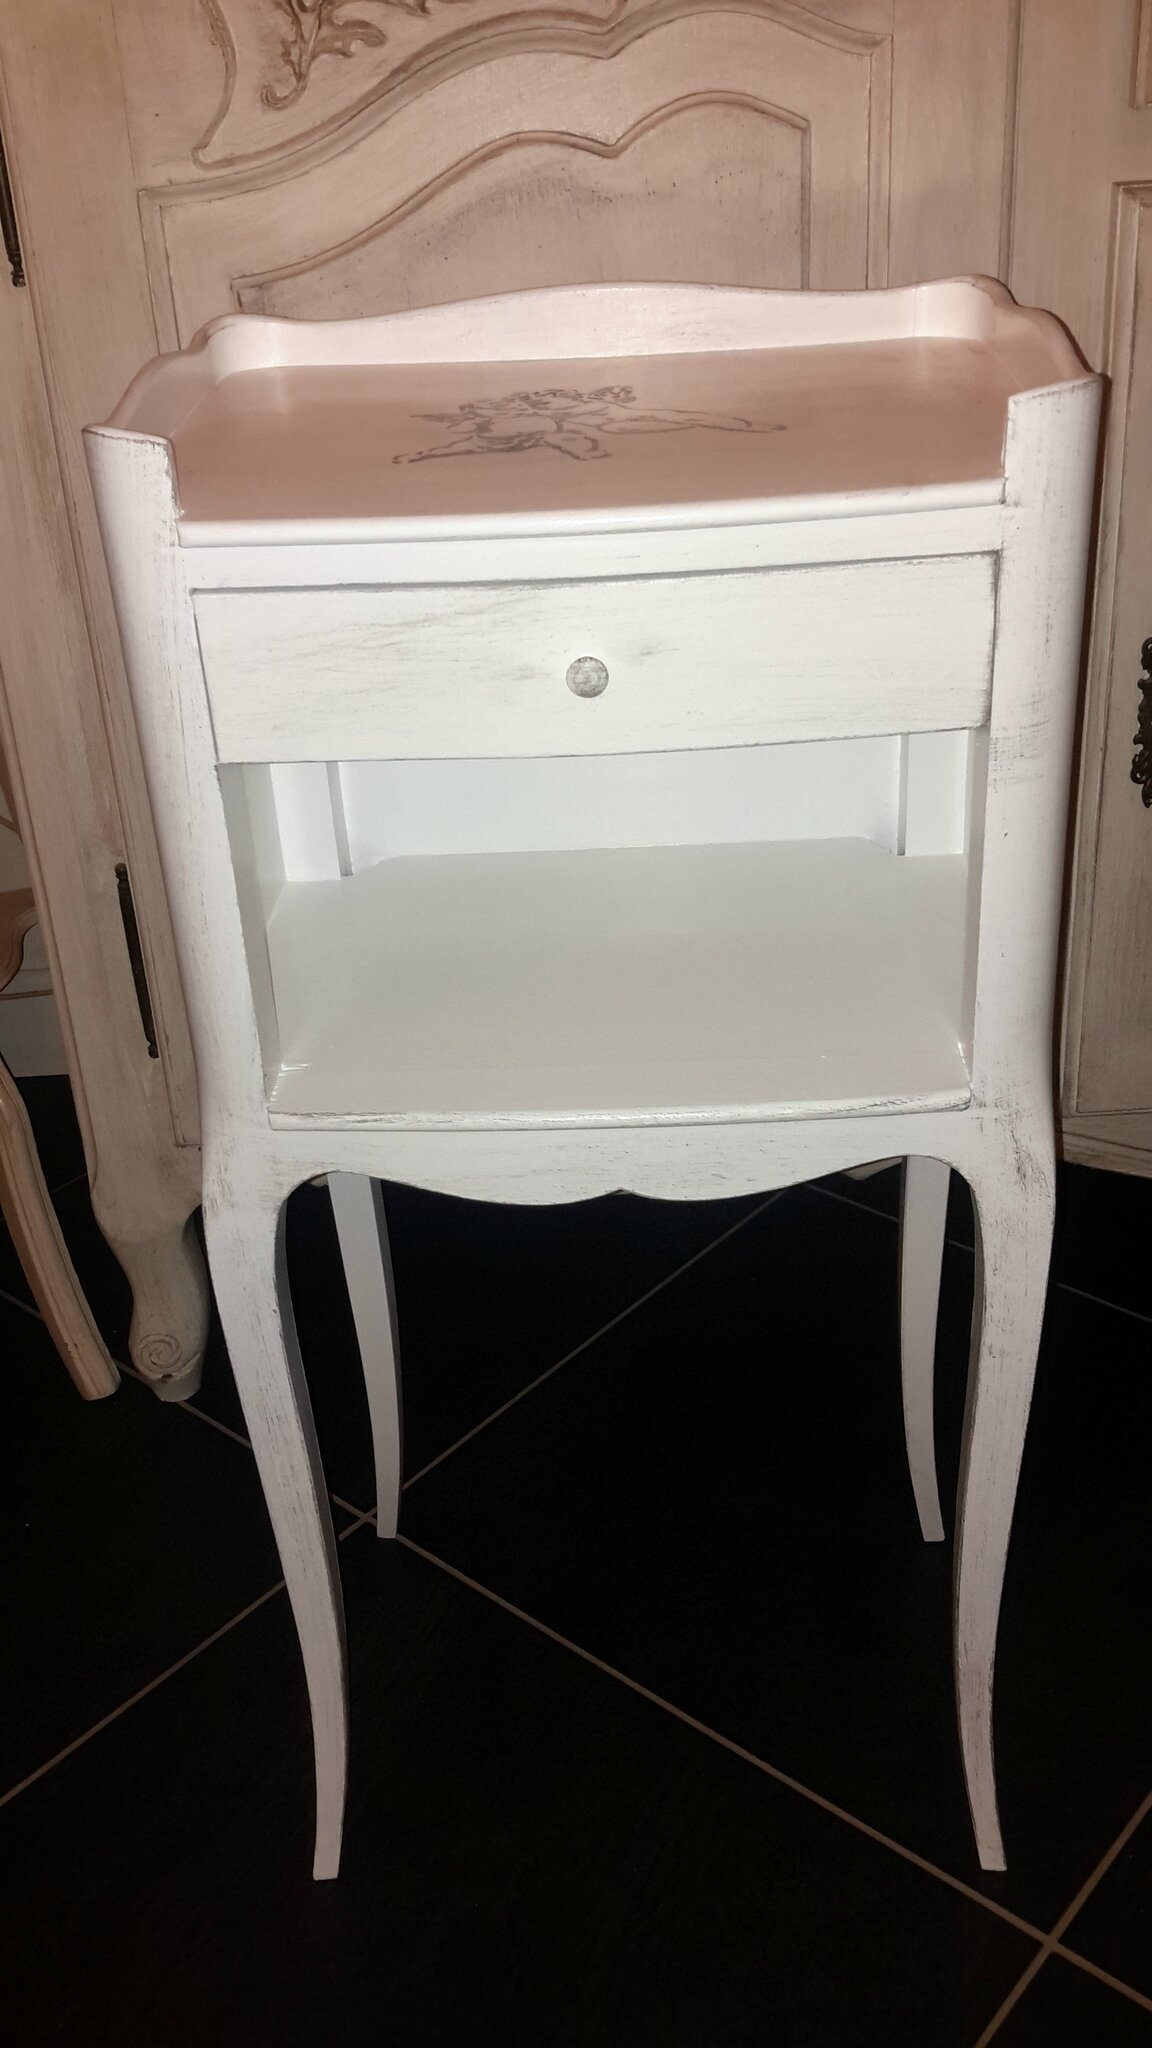 Meubles Patin S Esprit Shabby Chic Campagne Chic